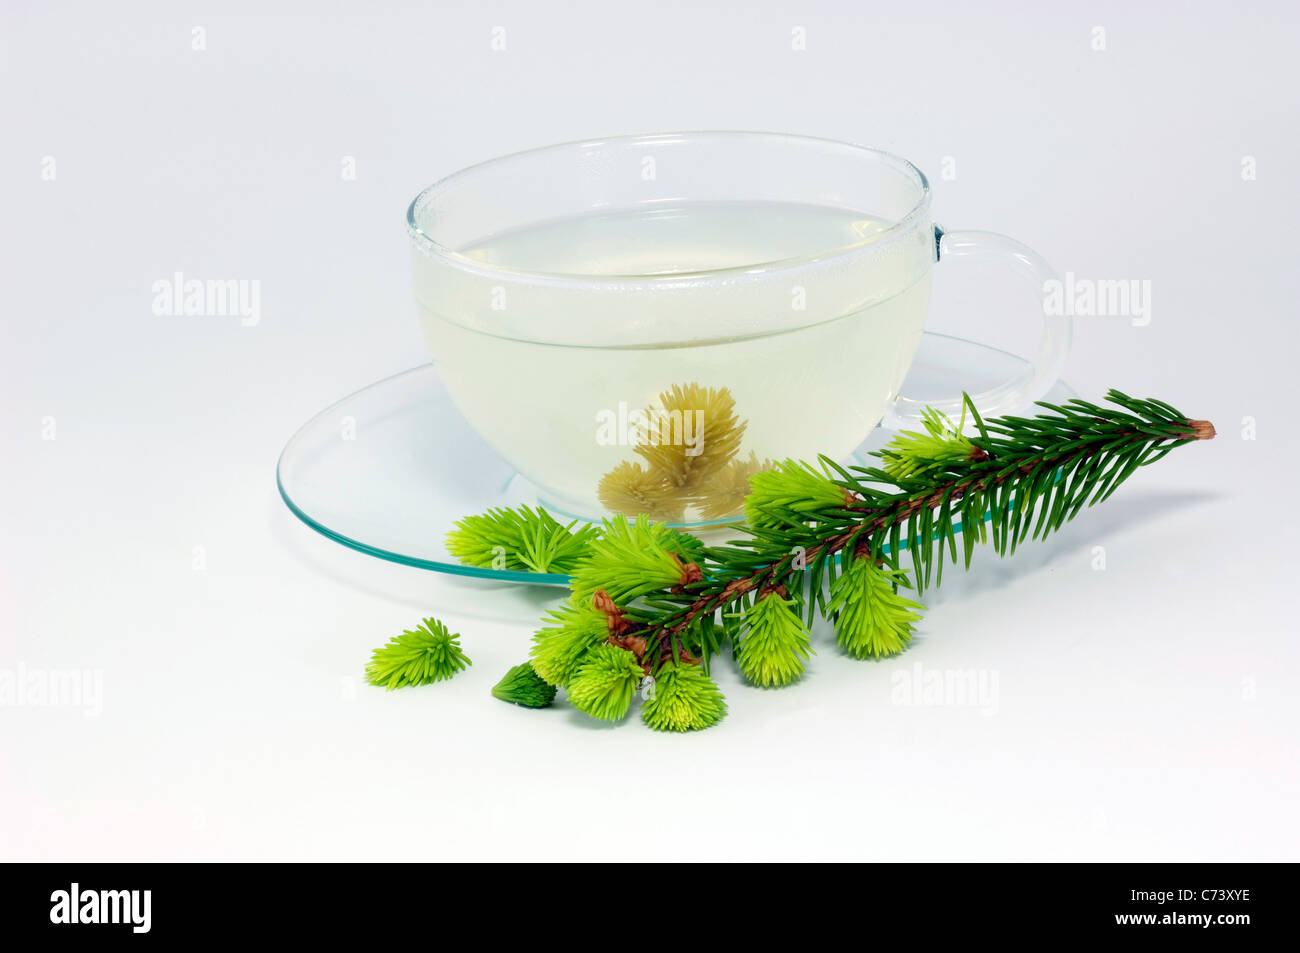 Common Spruce, Norway Spruce (Picea abies). Glass cup with infusion from fresh sprouts and twig. - Stock Image